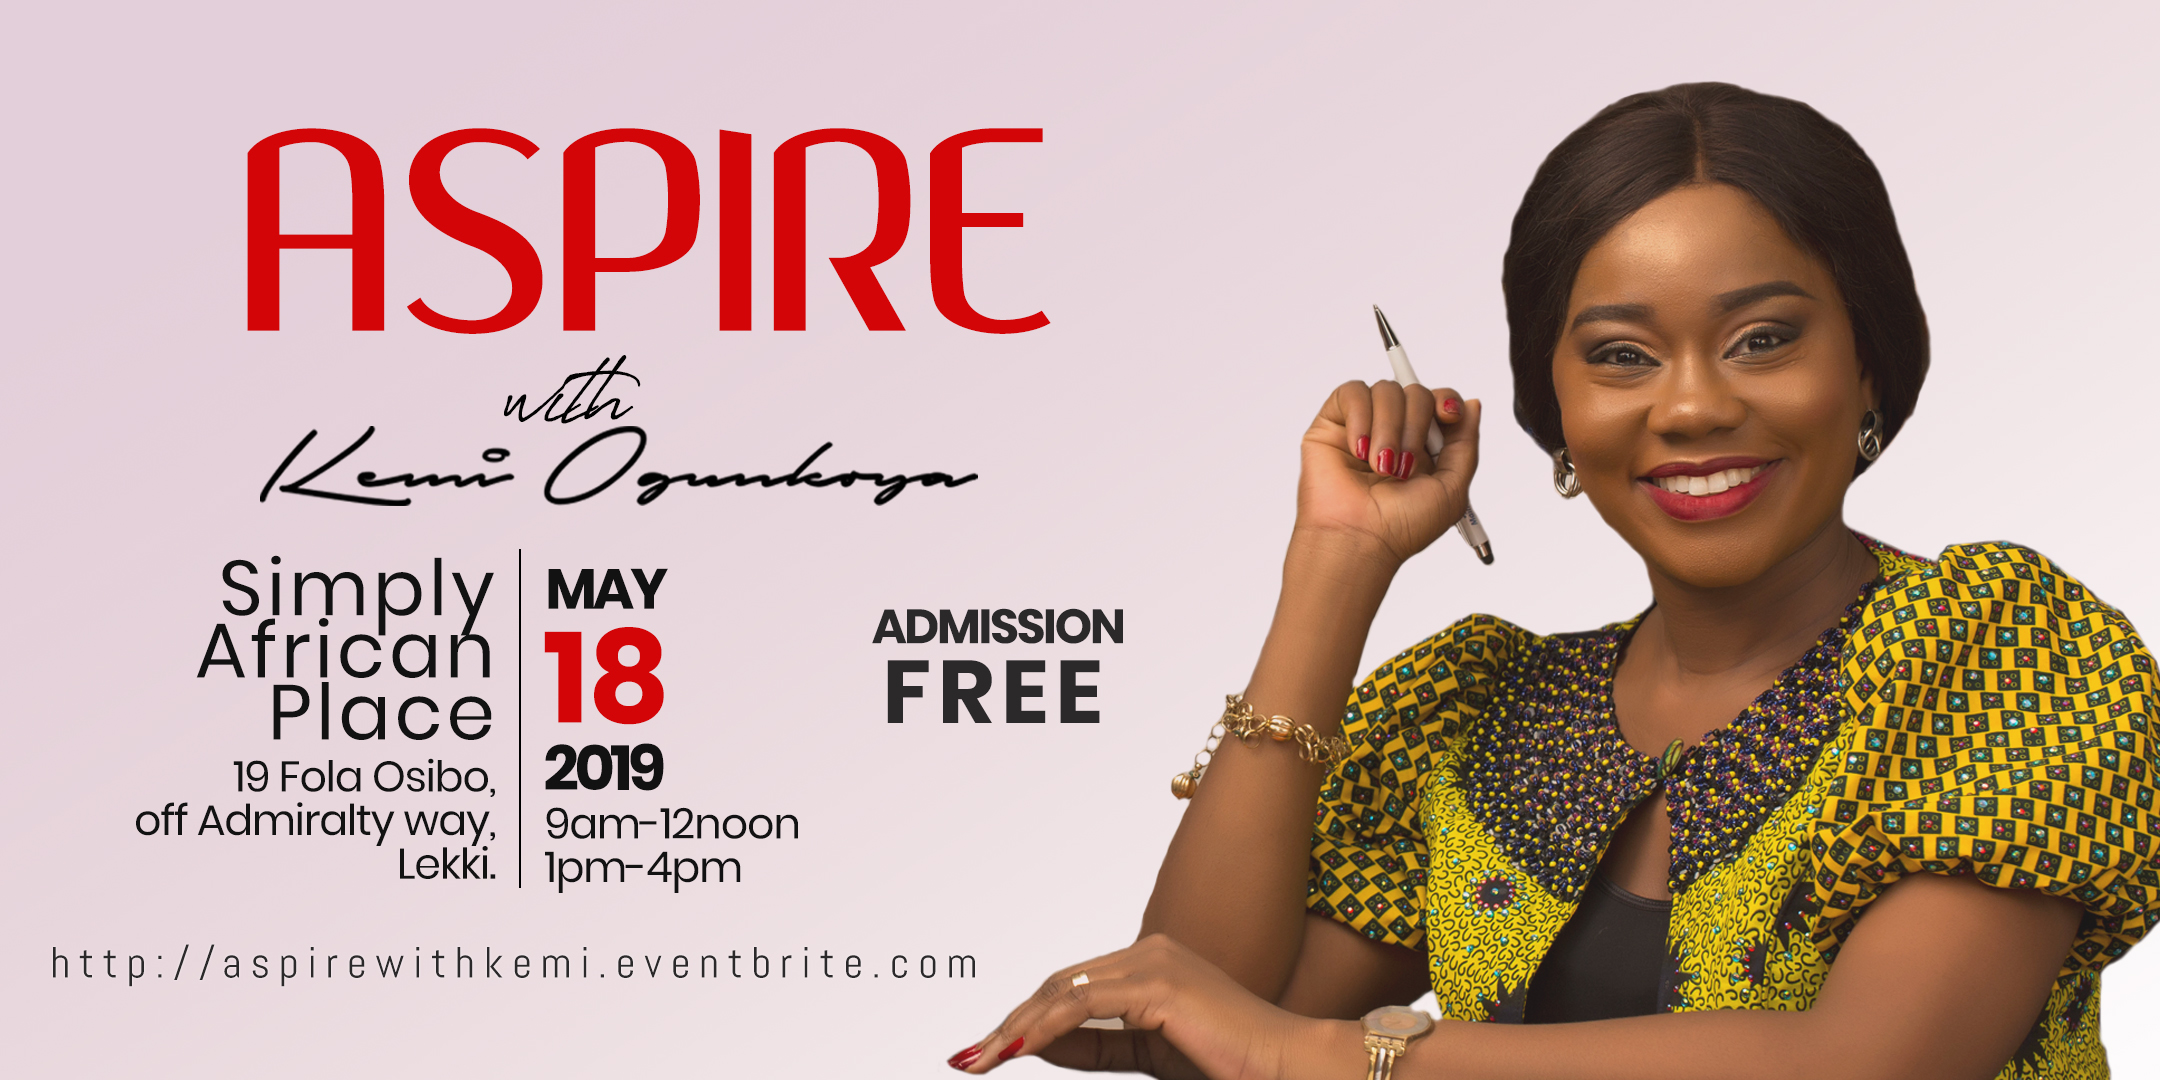 Aspire with Kemi Post free event in Nigeria using tickethub.ng, buy and sell tickets to event